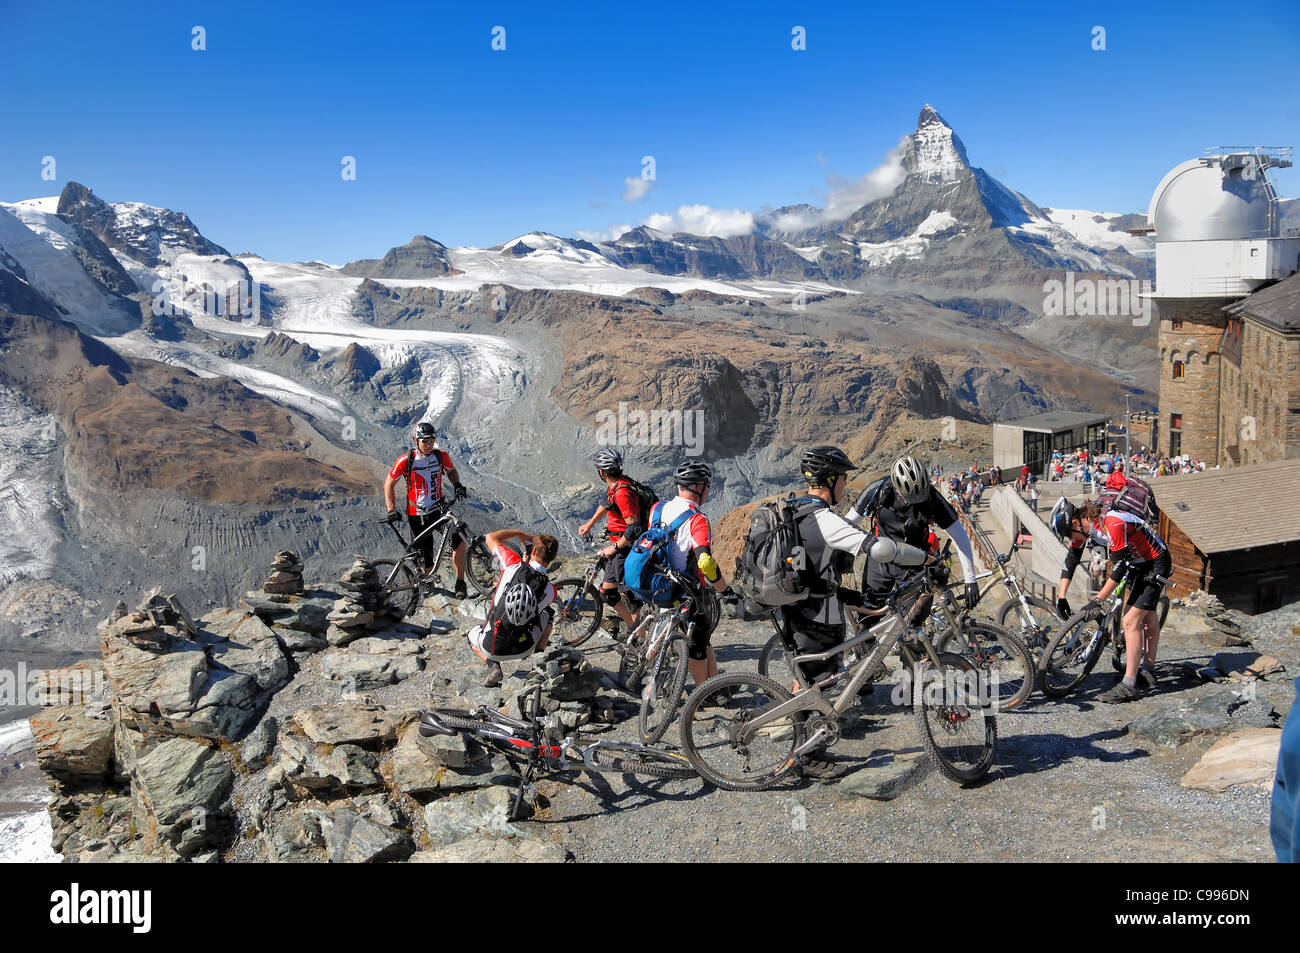 Moutain bikers about to descend from Gornegrat, 3,089m to the village of Zermatt, Valais, Switzerland - Stock Image